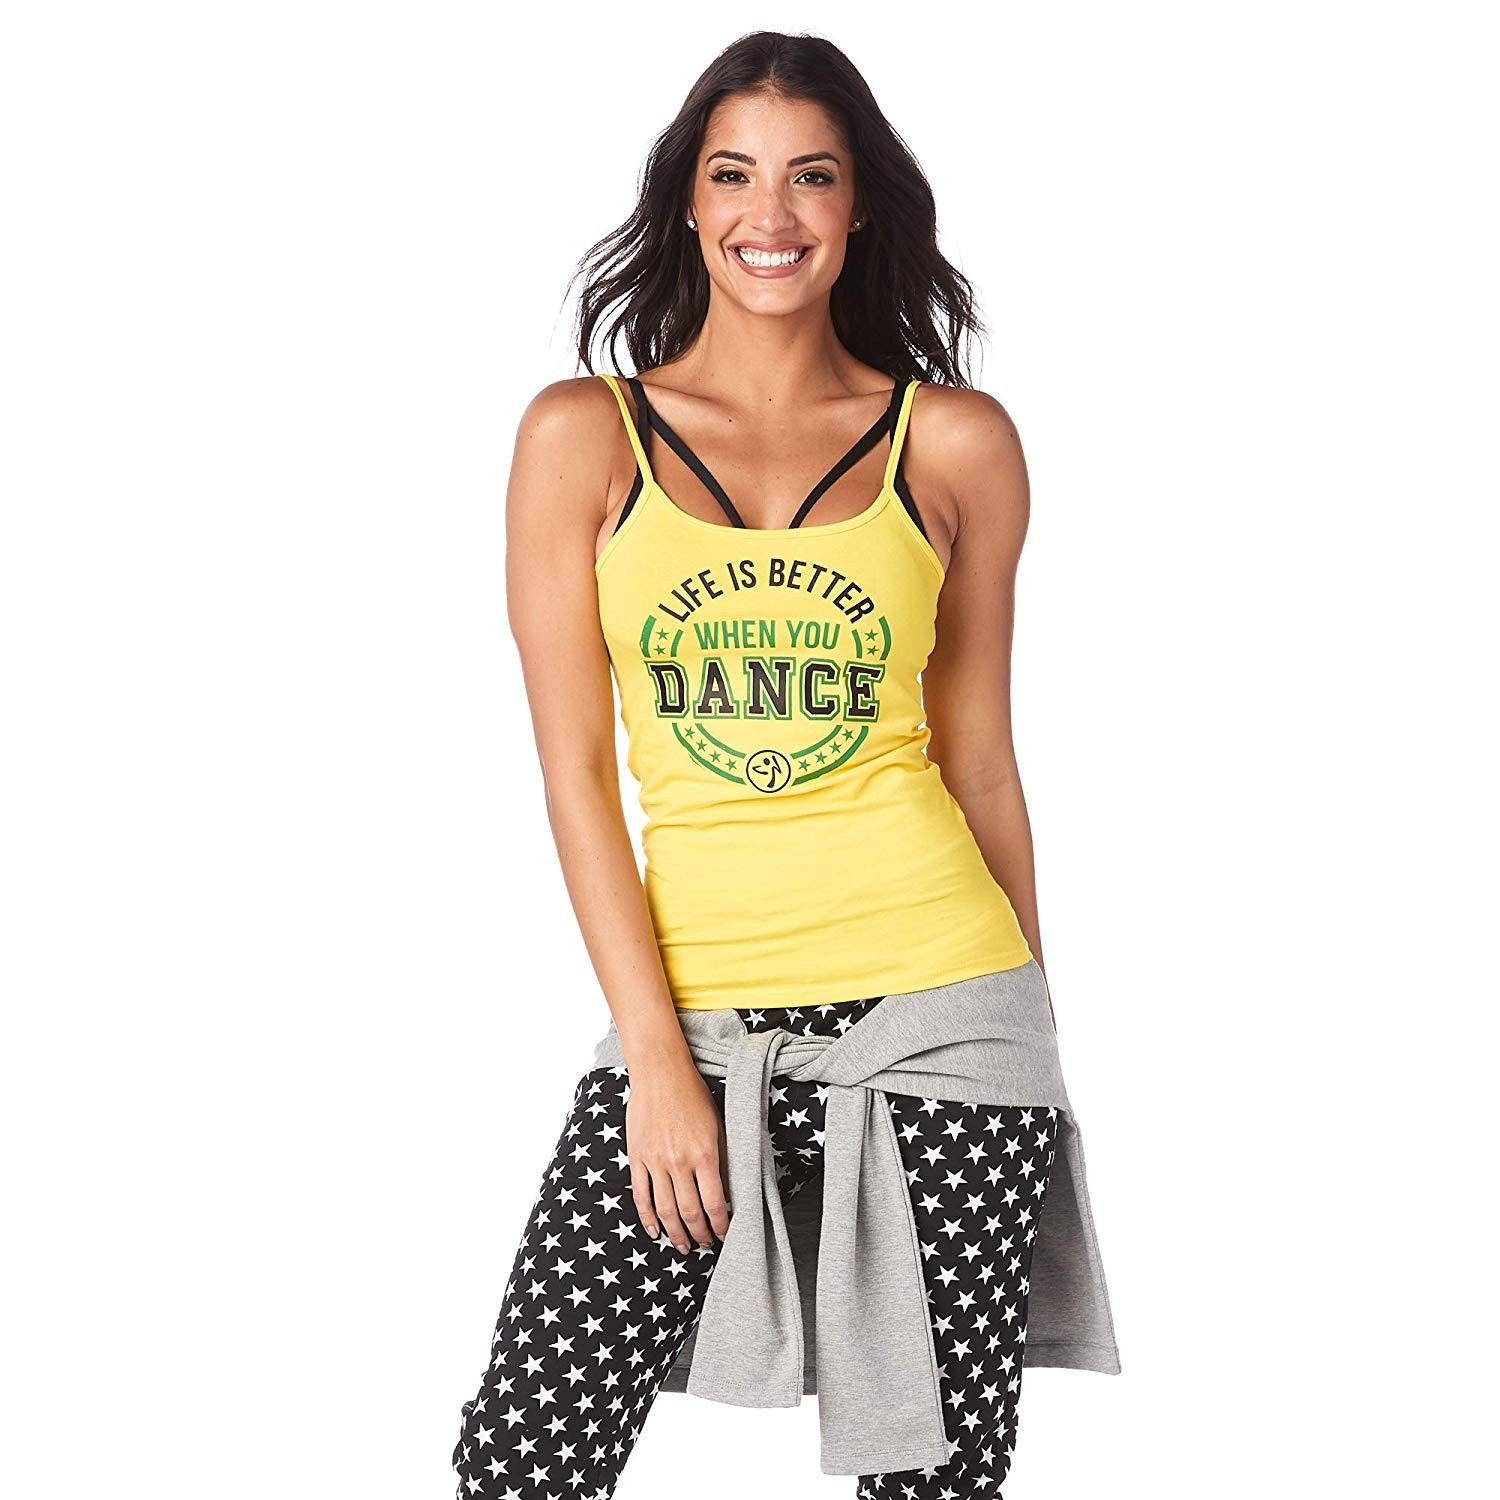 Women's Graphic Design Strappy Fit Workout Tank Top - Sunrays - XX-Large - C818KHKA6HR - Sports & Fi...